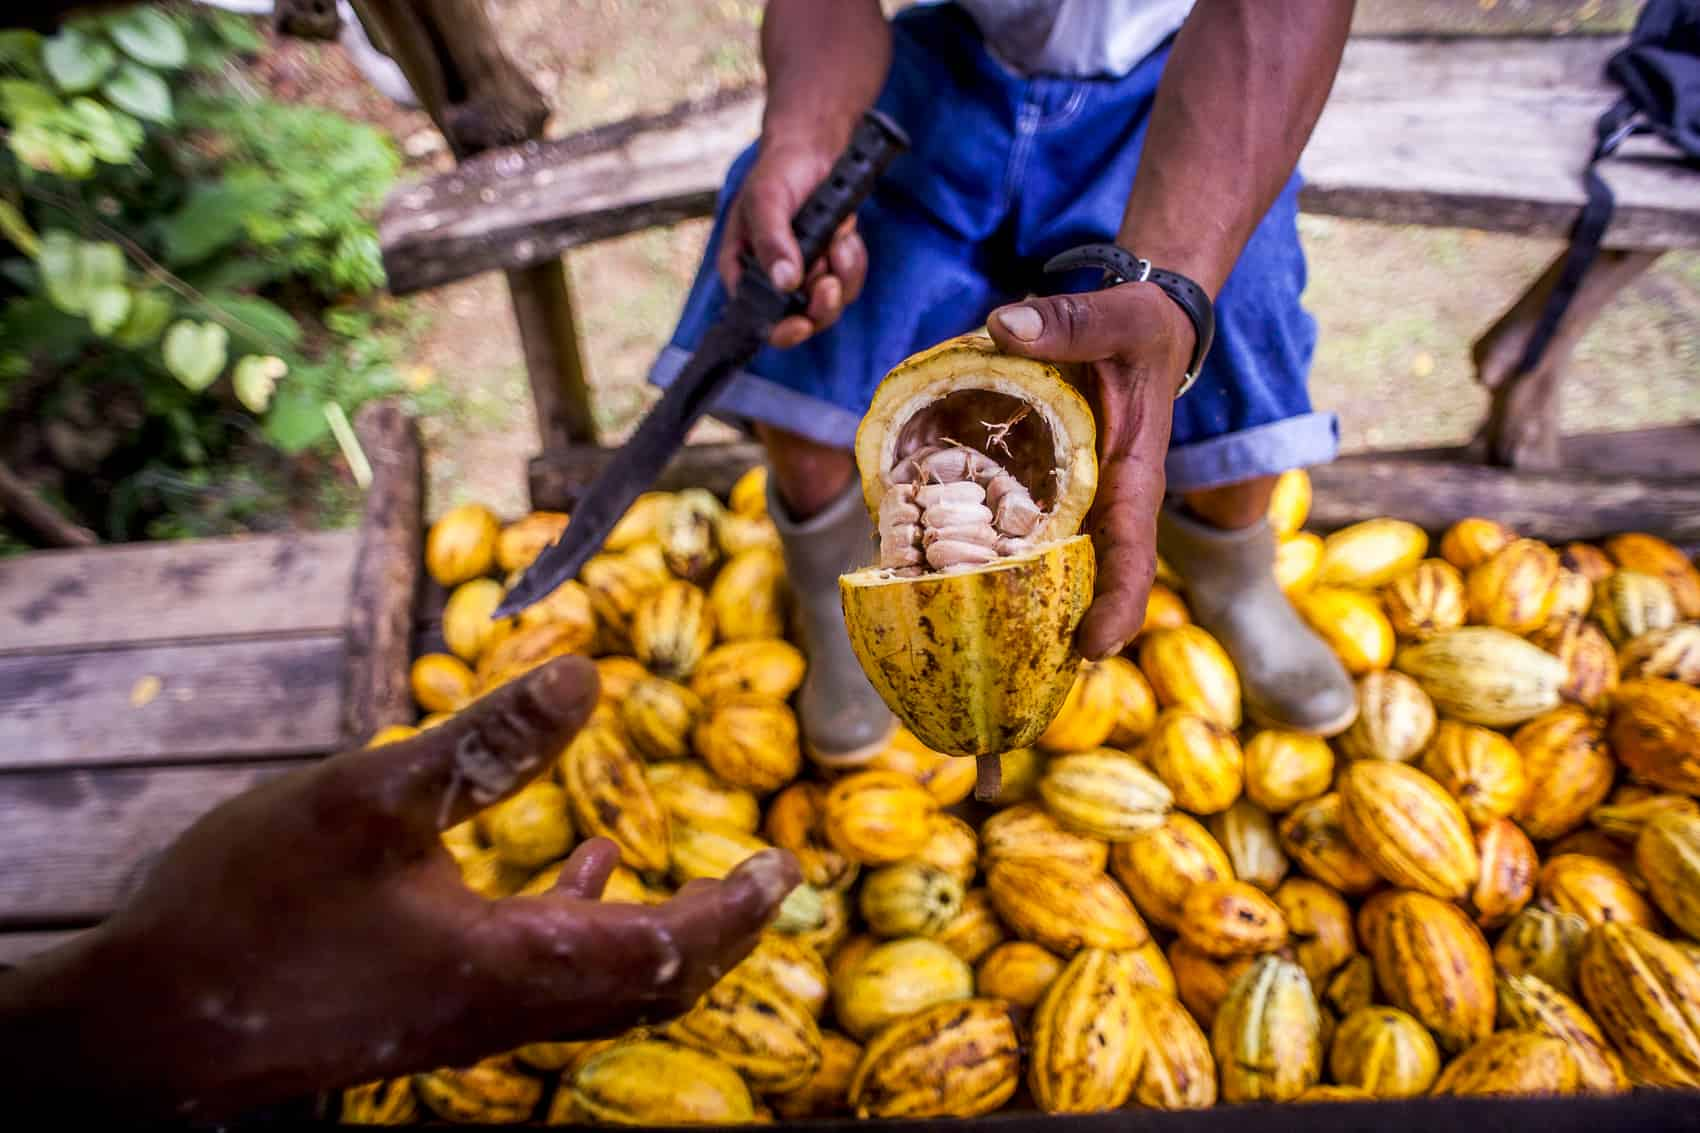 Tropical foods: Cacao pods